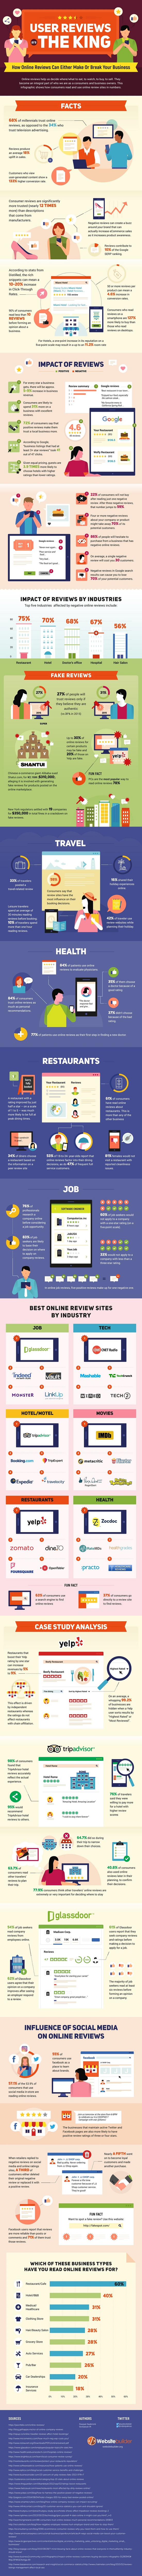 online review infographic by websitebuilder.org